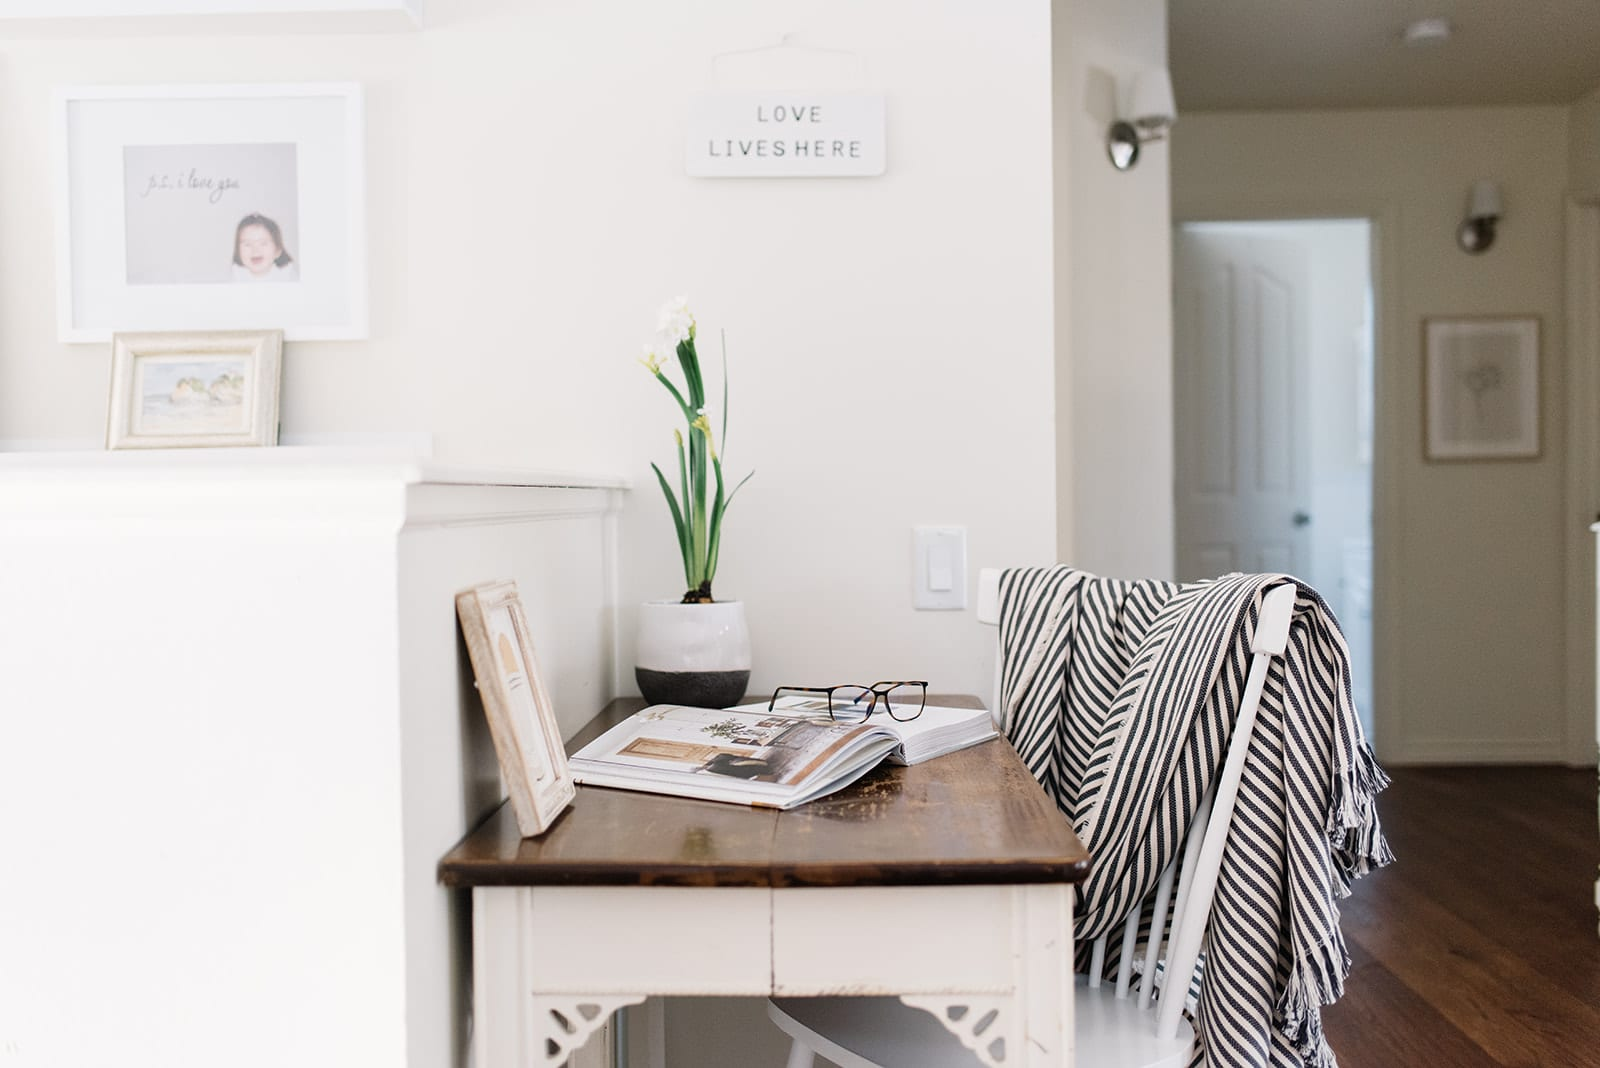 A small office nook with a table and chair